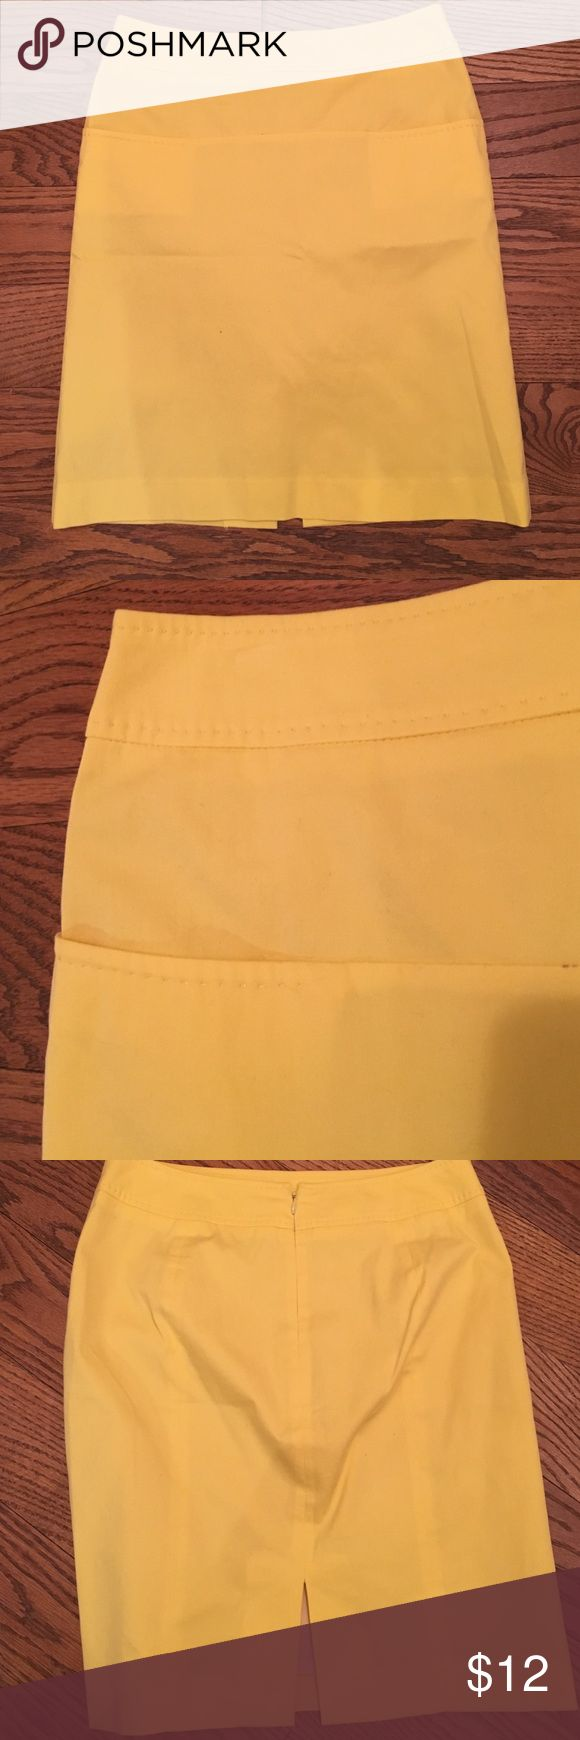 Lemon yellow skirt Mid thigh 98% cotton and 2% Lycra straight skirt by teen flow. Company new name is Judith and charles. Barely worn. Small slit in back. Slit front pockets. Great for spring/summer for work teen flow / judith and charles Skirts Midi